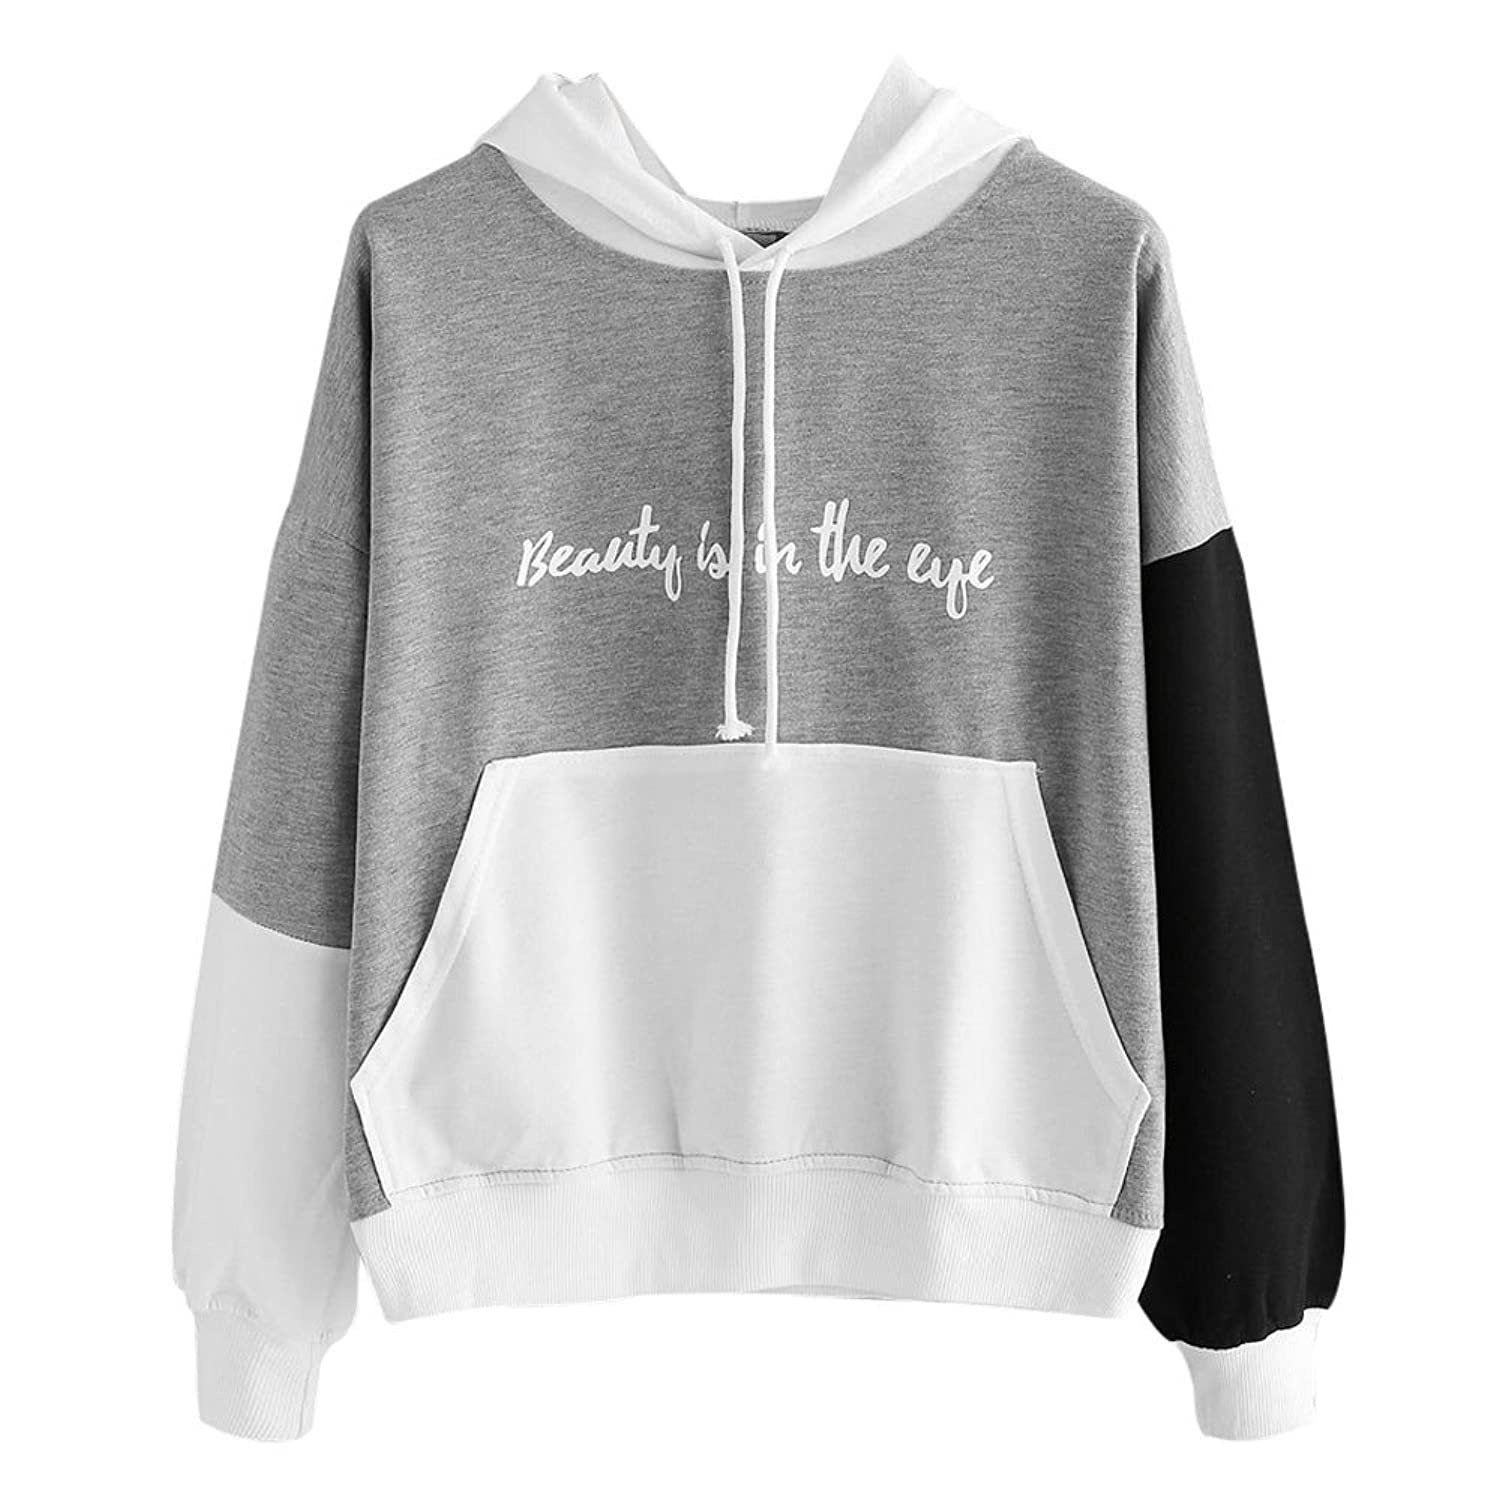 Beauty is in the eye SFE Women's Hooded Sweatshirt Stitching Color Hooded Pullover Tops Blouse